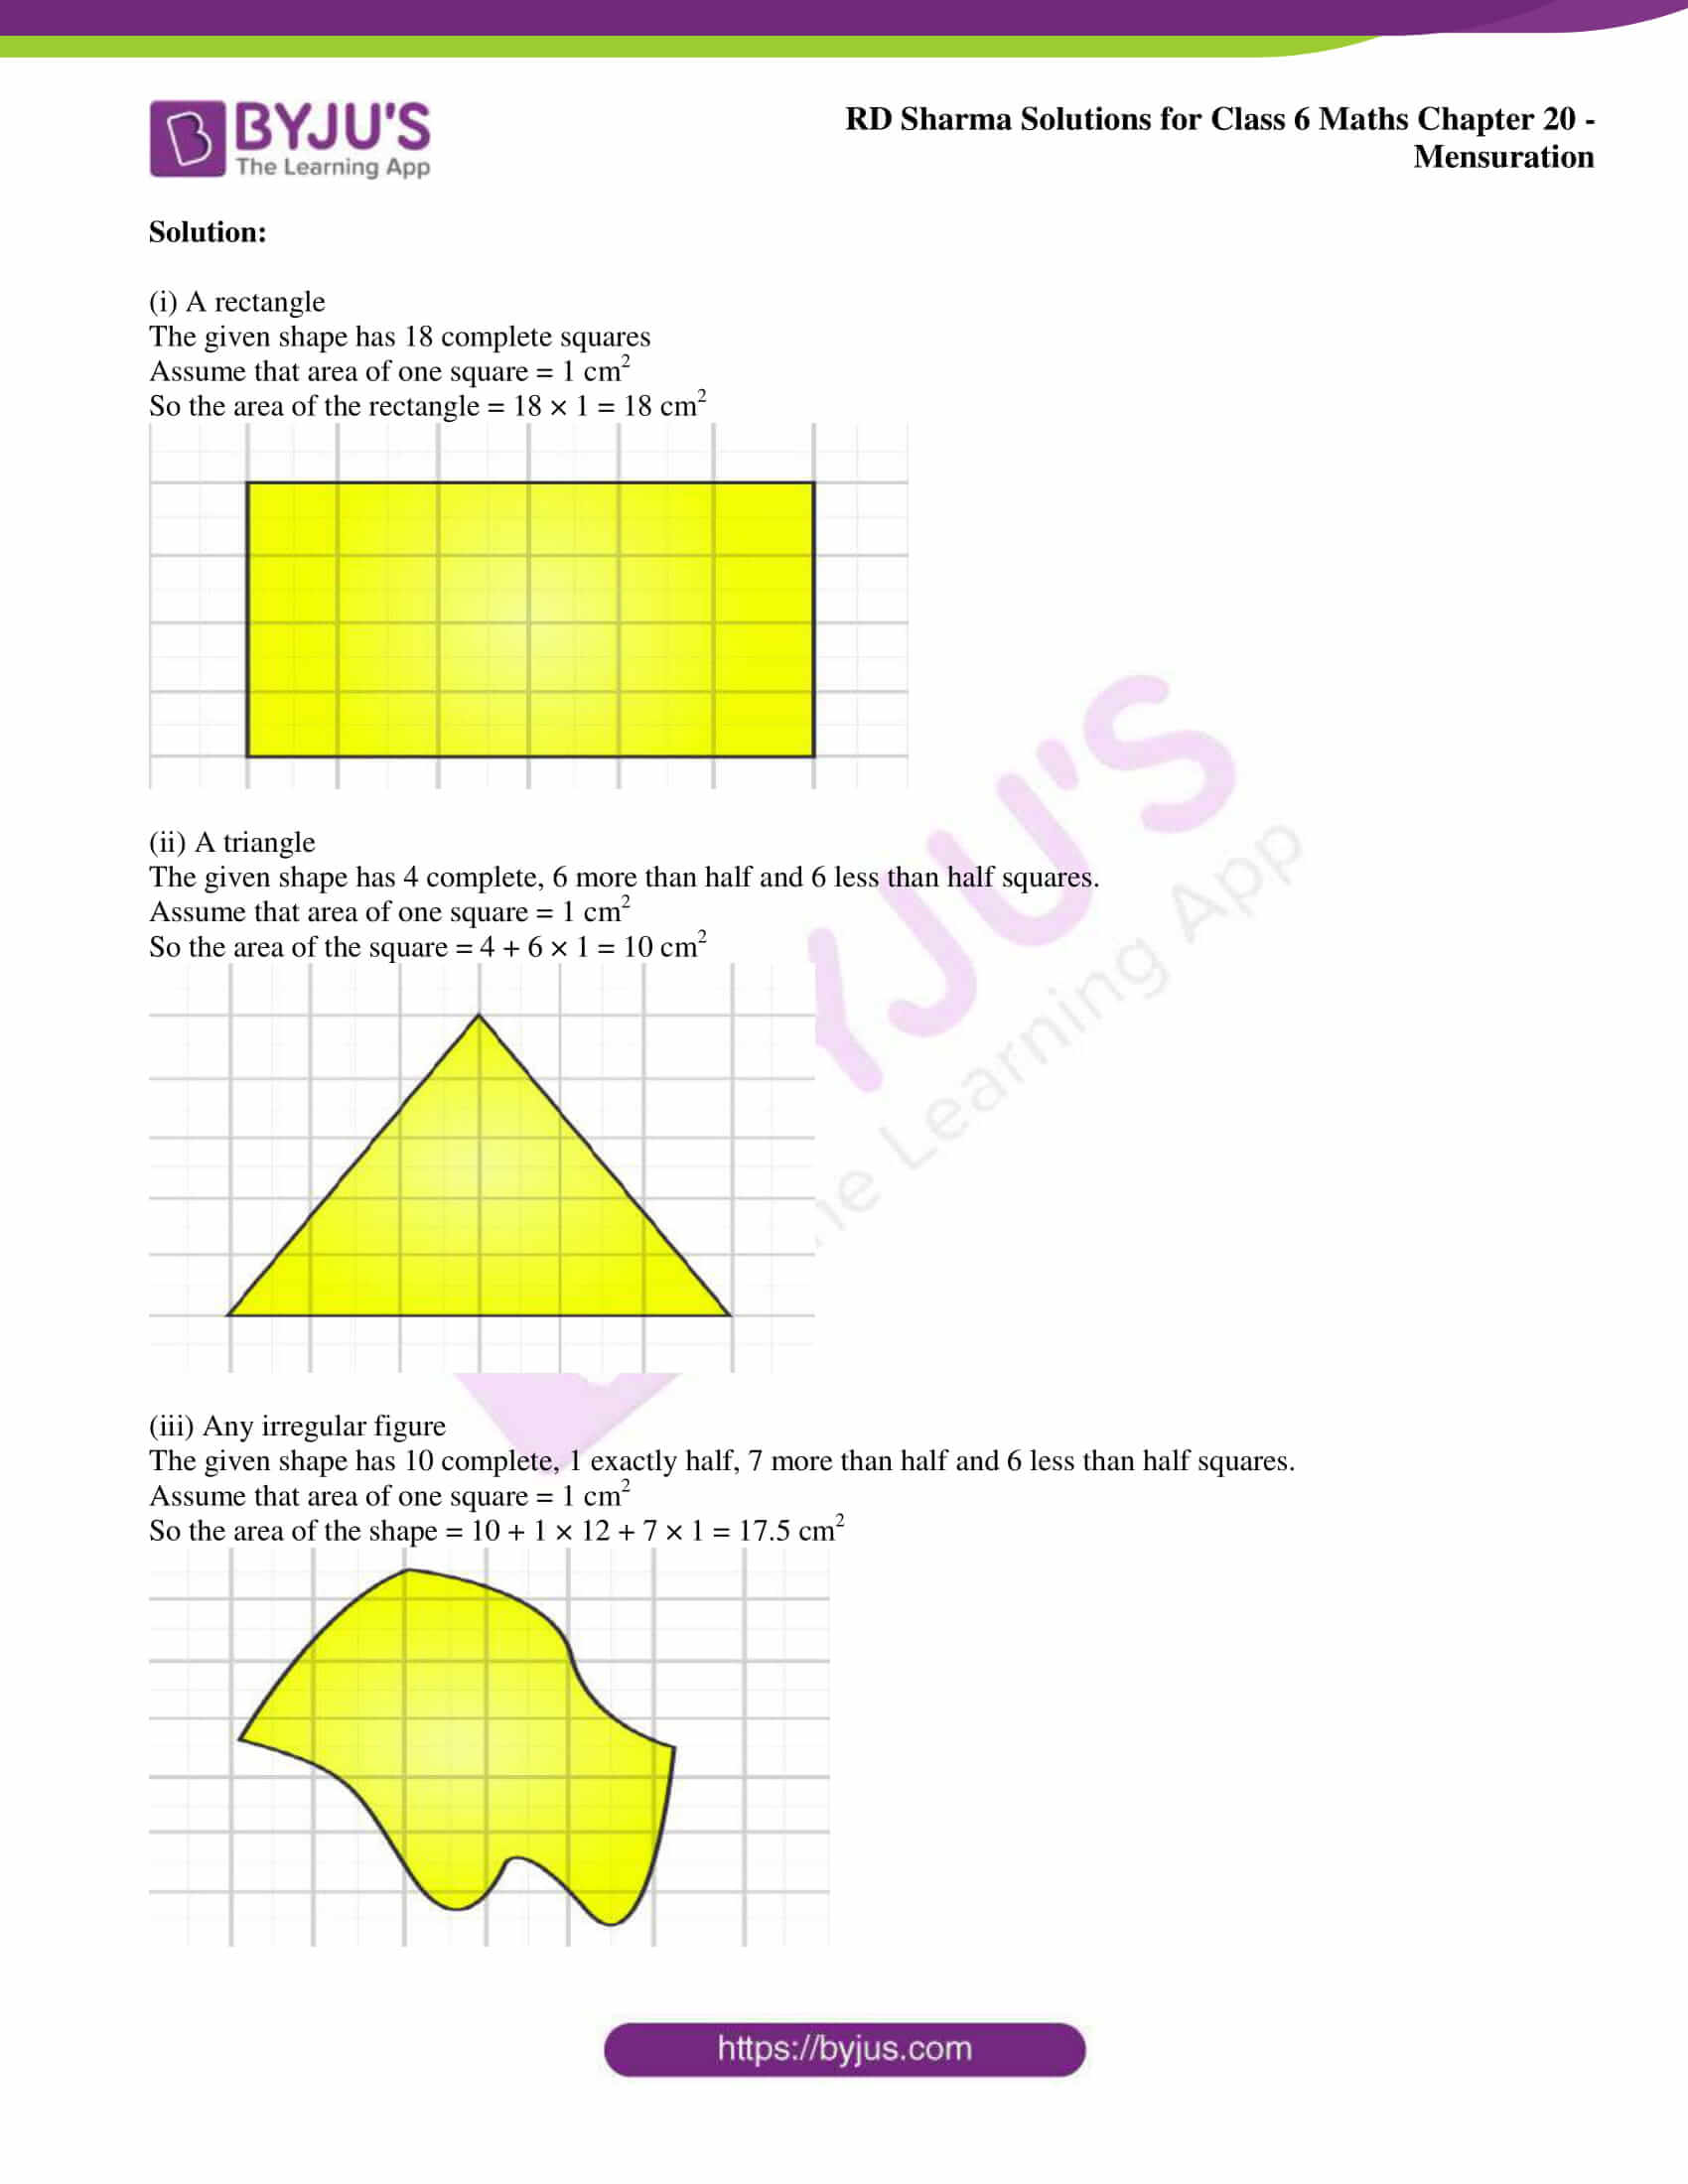 rd sharma solutions nov2020 class 6 maths chapter 20 exercise 3 2